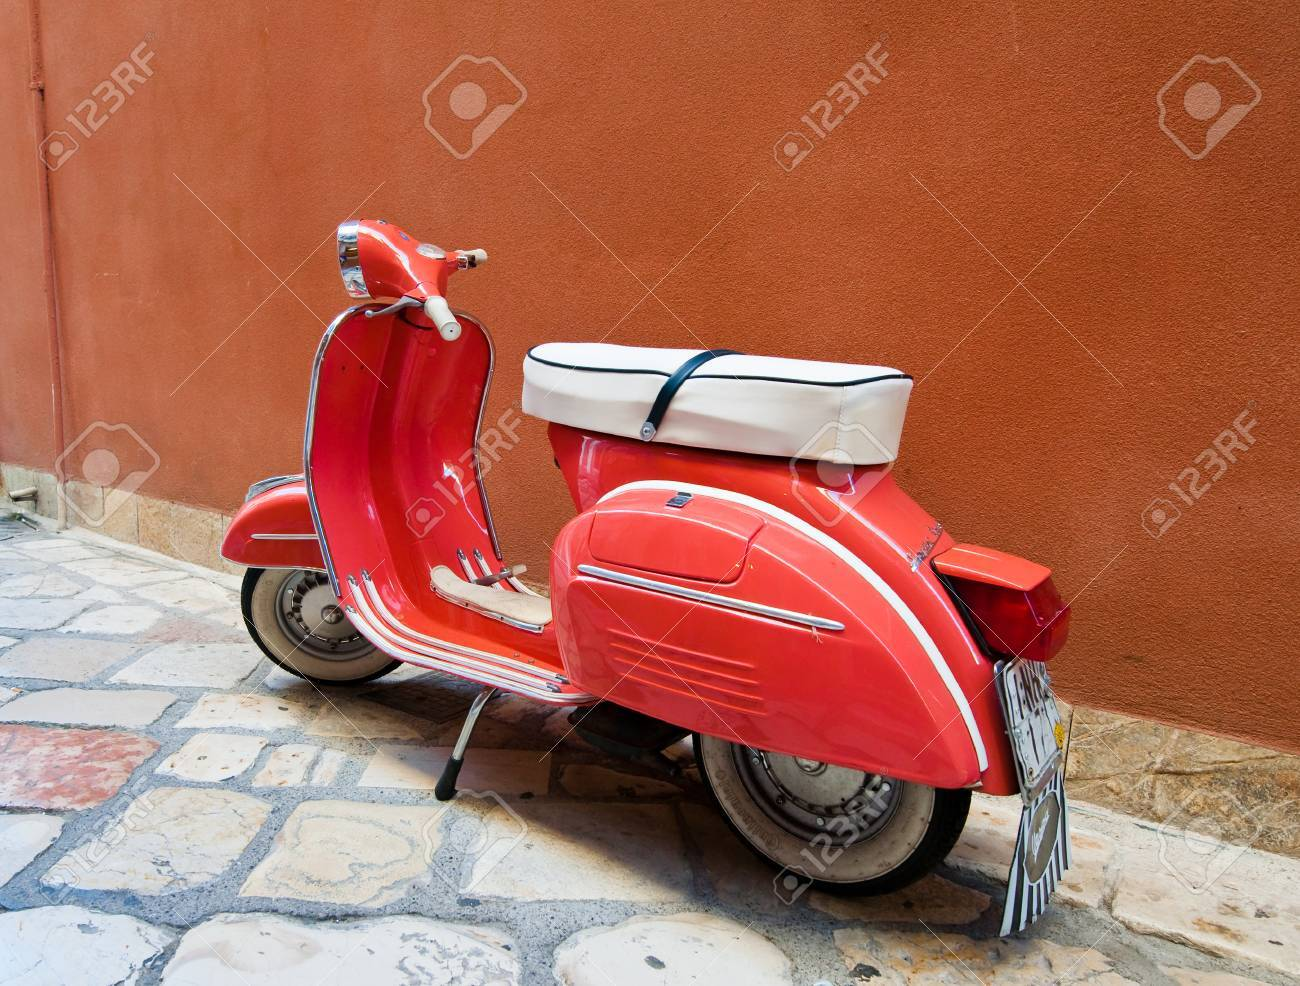 CORFU-AUGUST 22: Vintage Vespa scooter parked on Kerkyra street